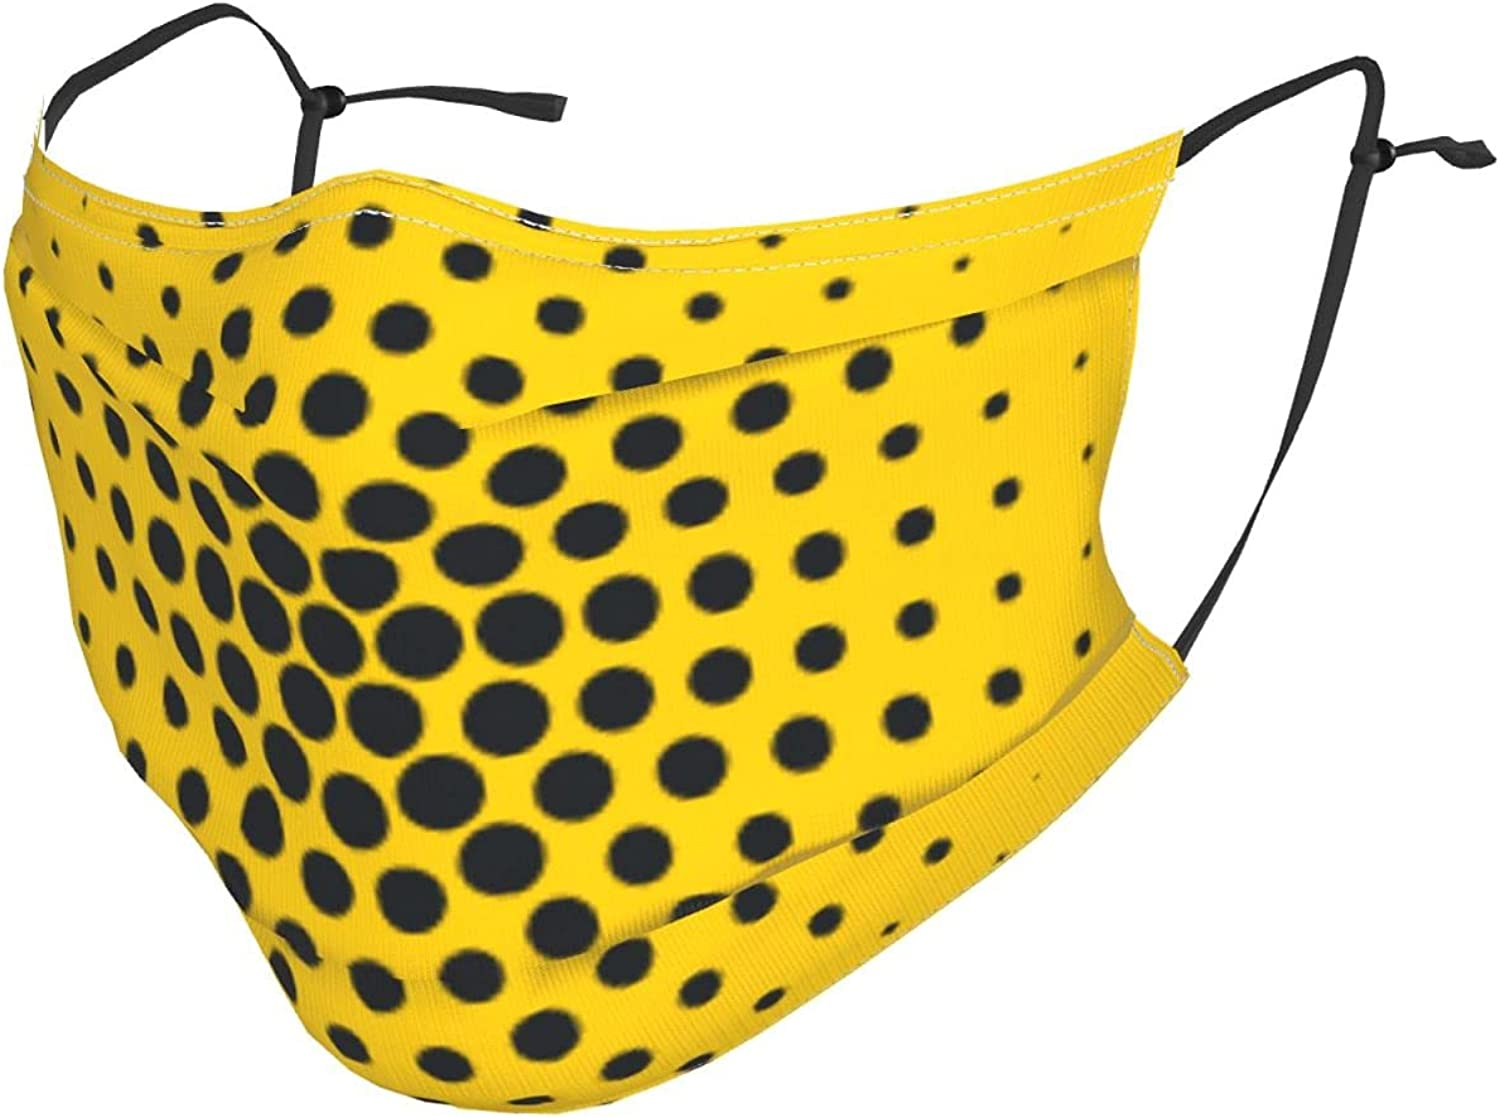 Black Circular Dots Yellow Background Adjustable Reusable Face Masks with Filter Pocket,Windproof Dust-Proof Washable Face Bandanas Balaclava Masks with Shield for Adults Kids Women Men